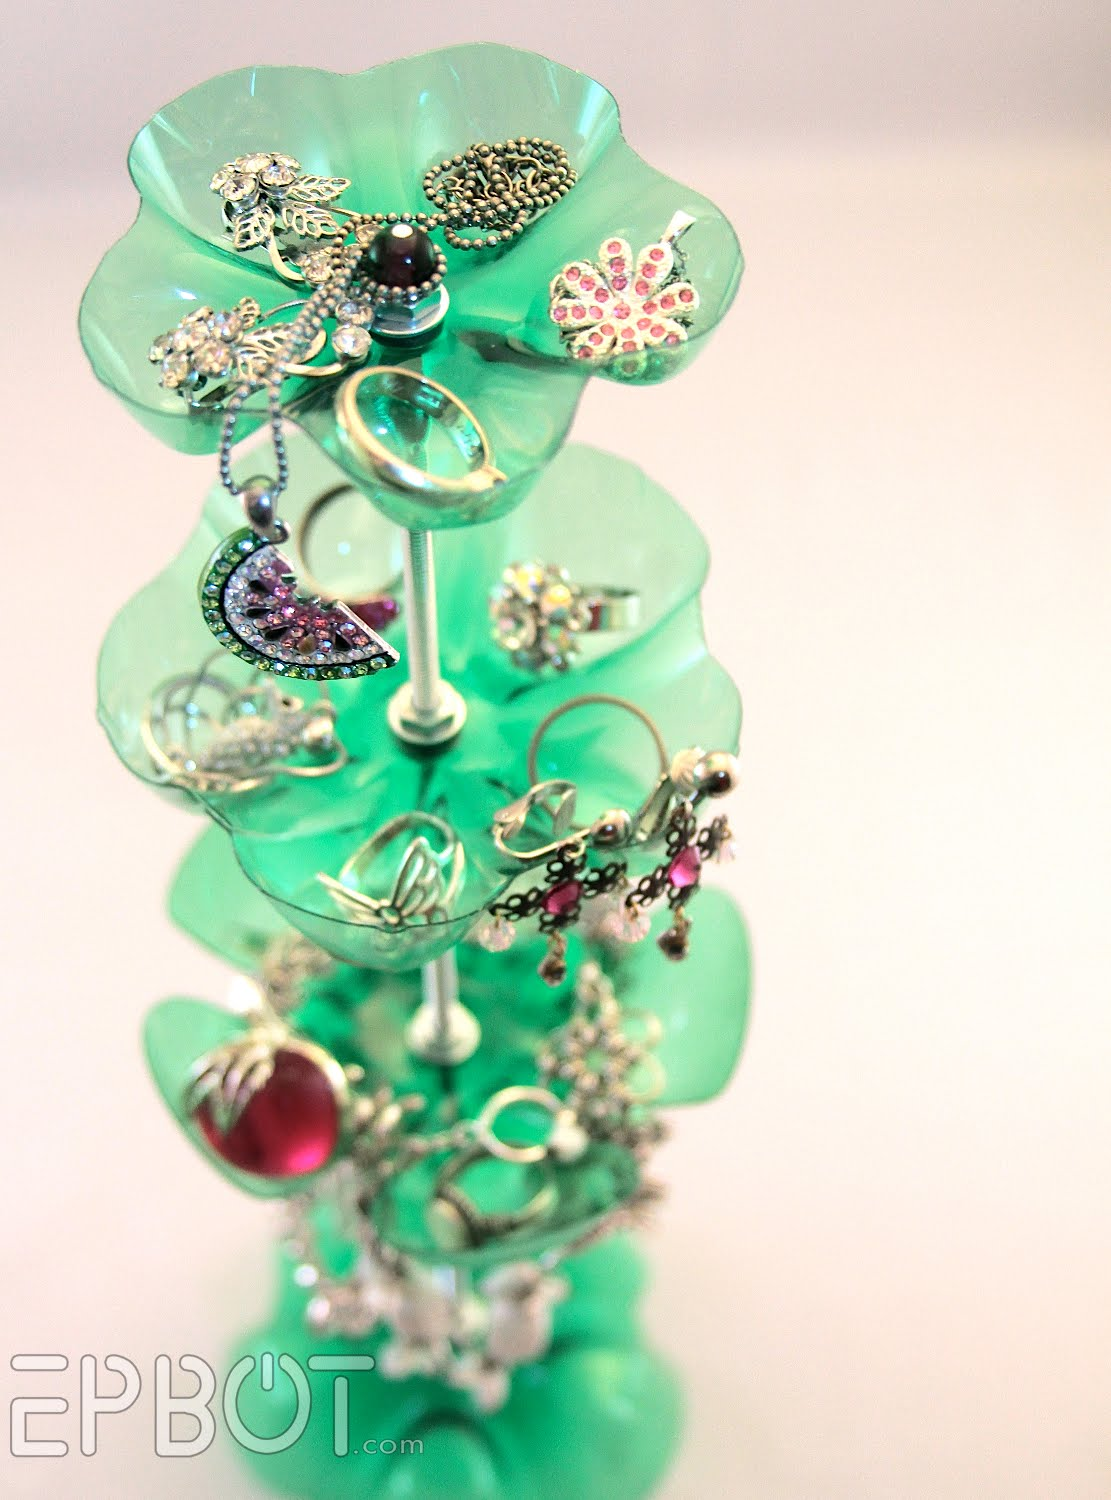 How-To: Two-Liter Jewelry Stand